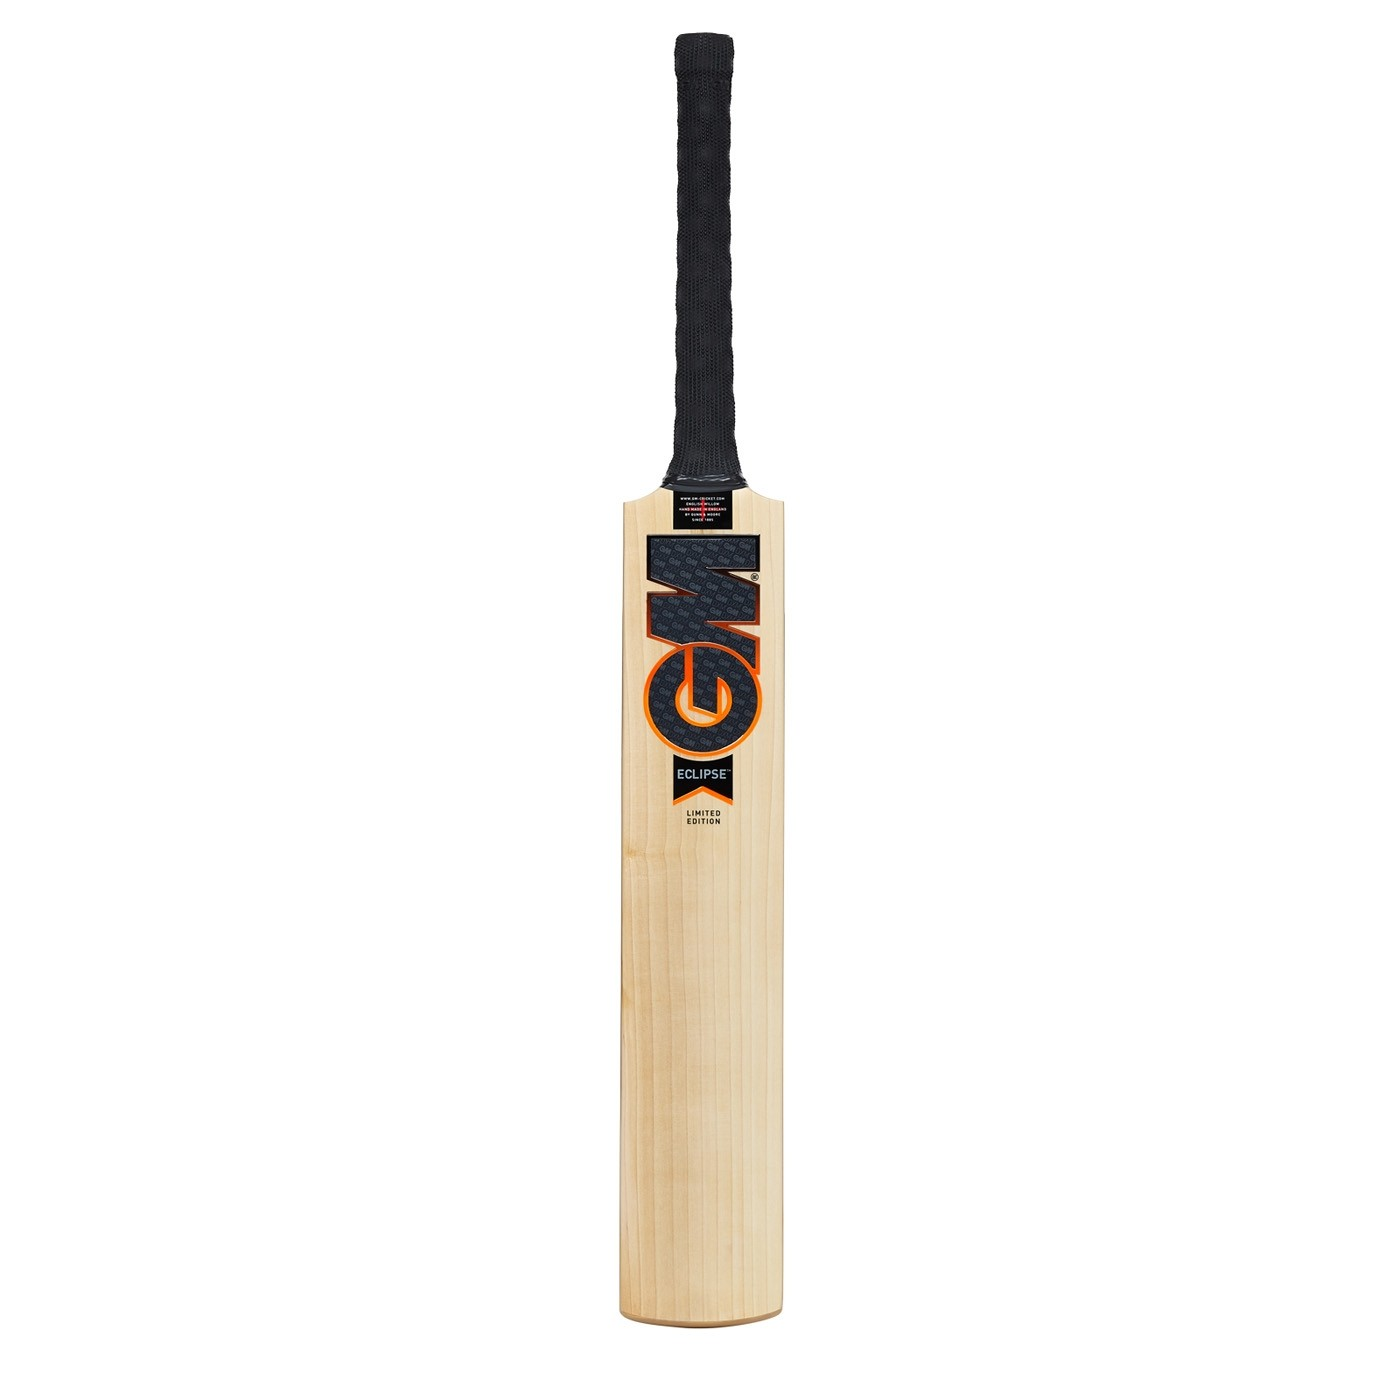 2021 Gunn and Moore Eclipse DXM Original Cricket Bat